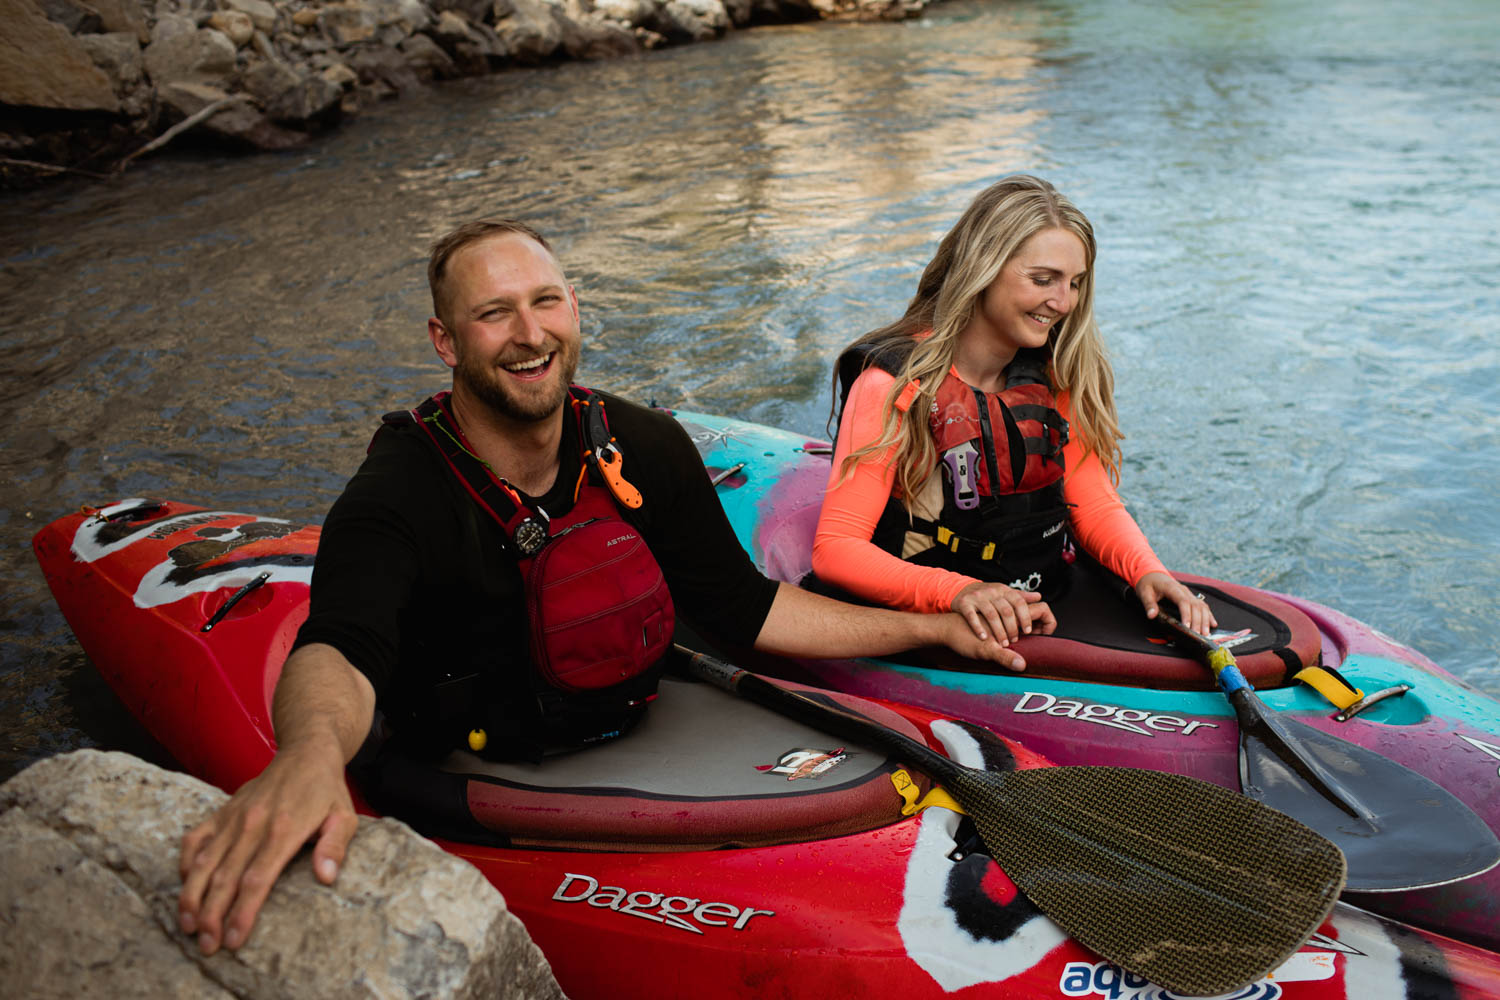 Kayak Engagement Photography